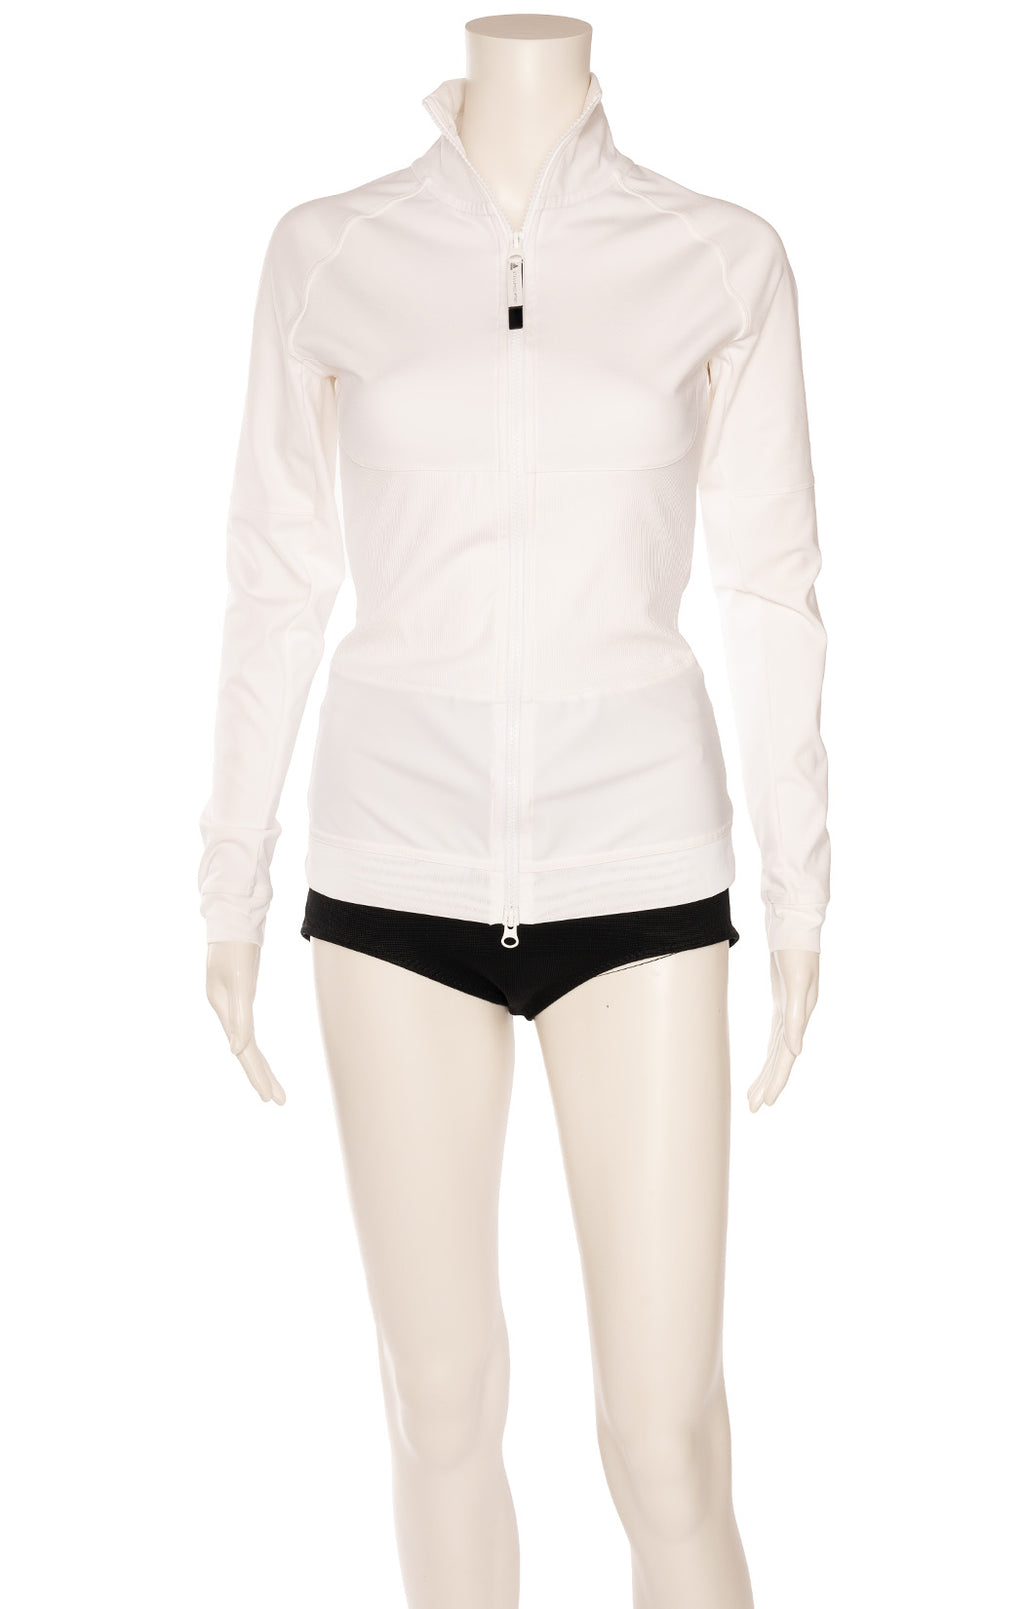 White front zipper long sleeve jacket